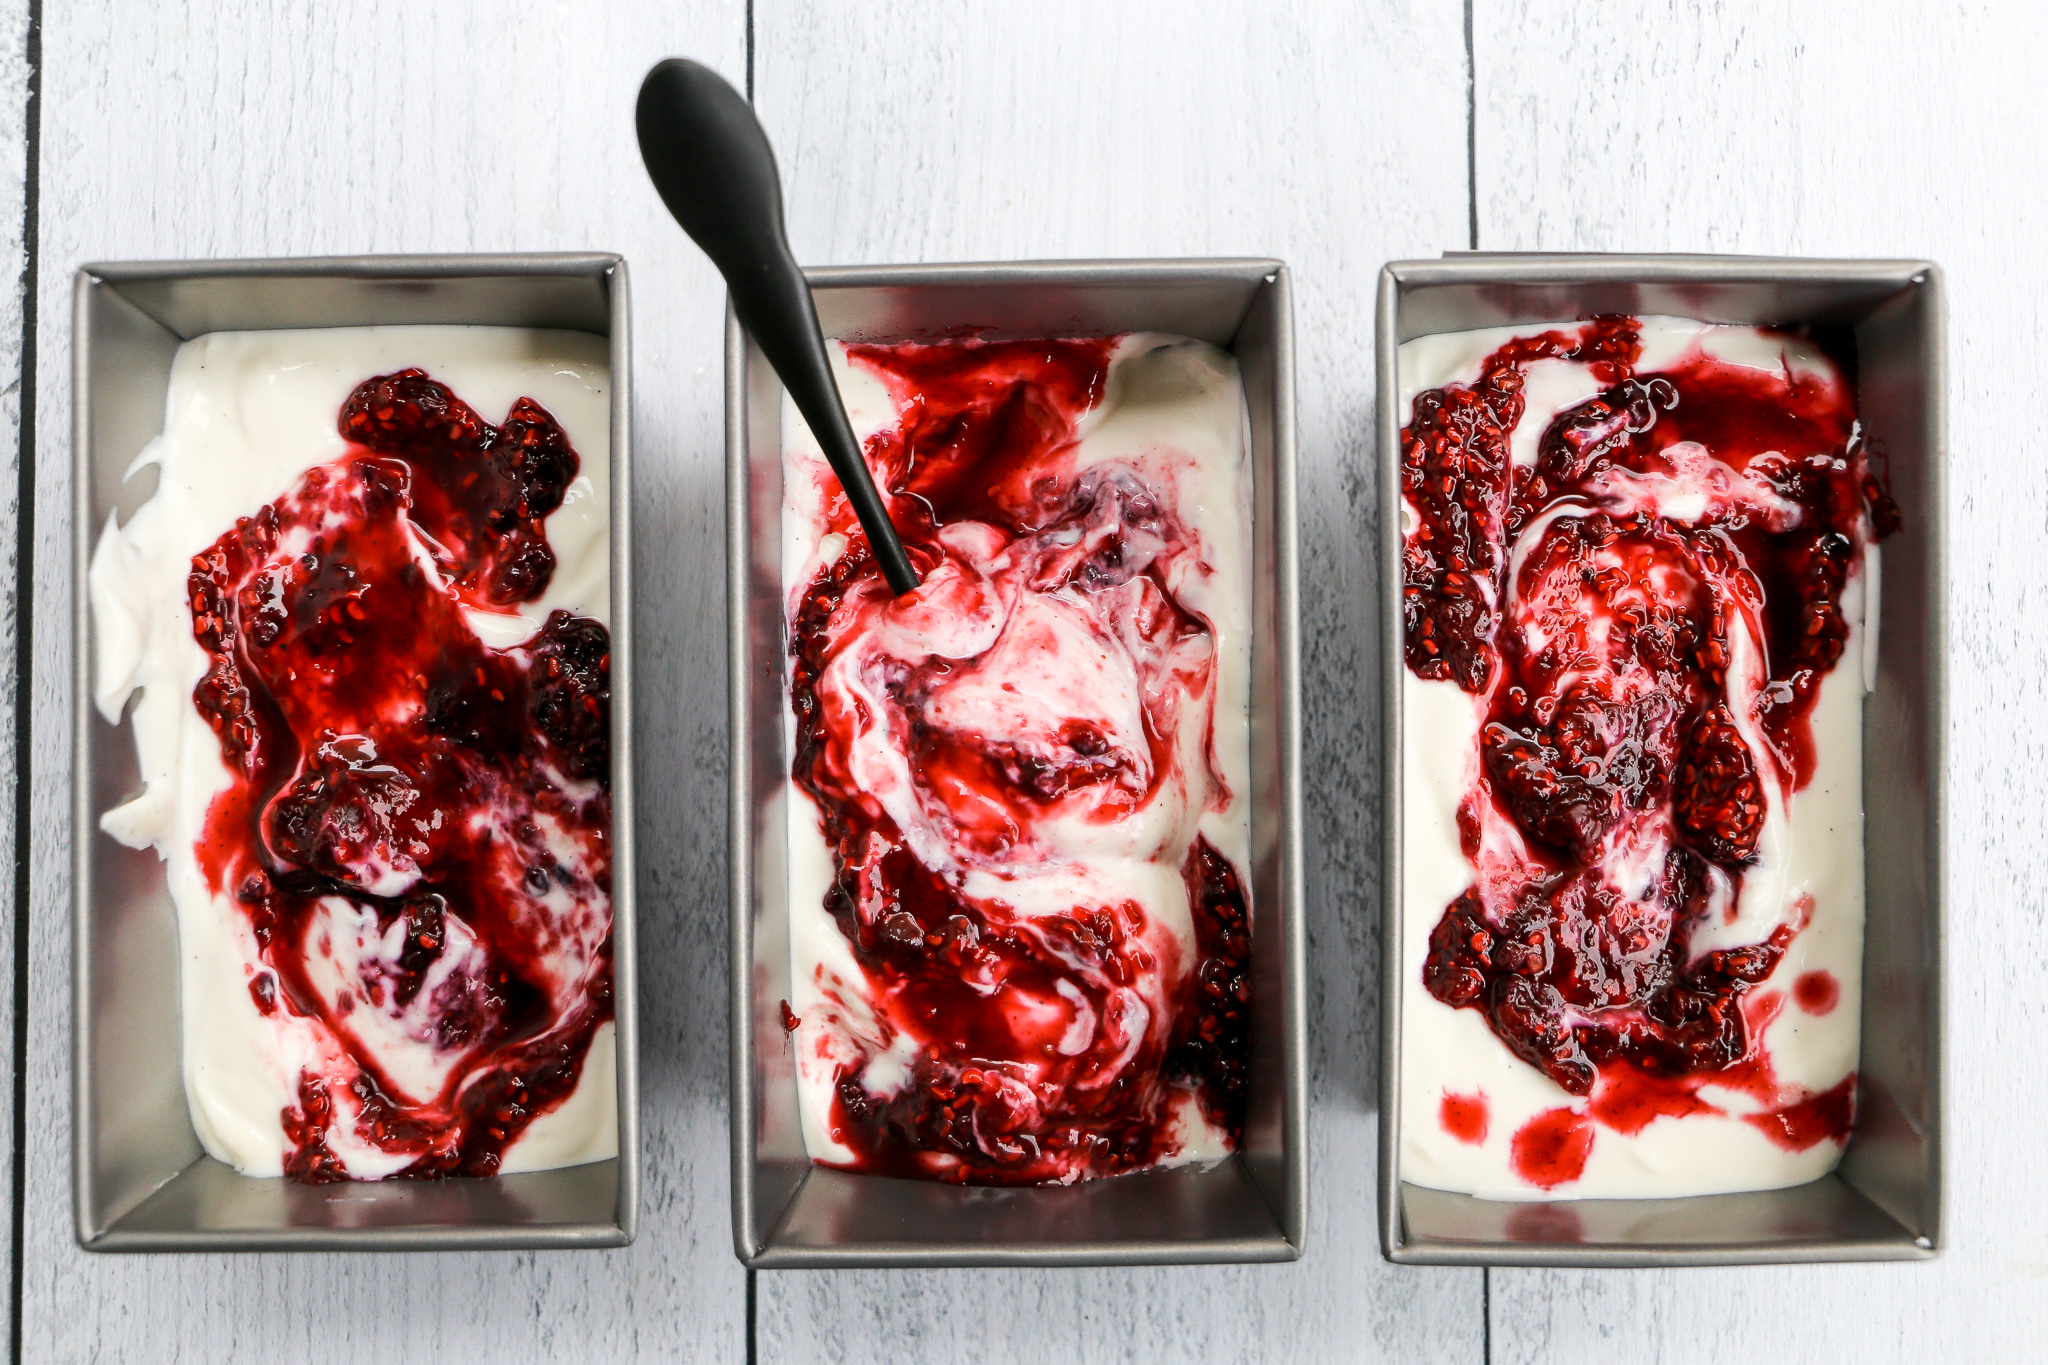 Roasted Strawberry Frozen Yogurt - Summer in a bowl and also the only thing I want to eat these days.